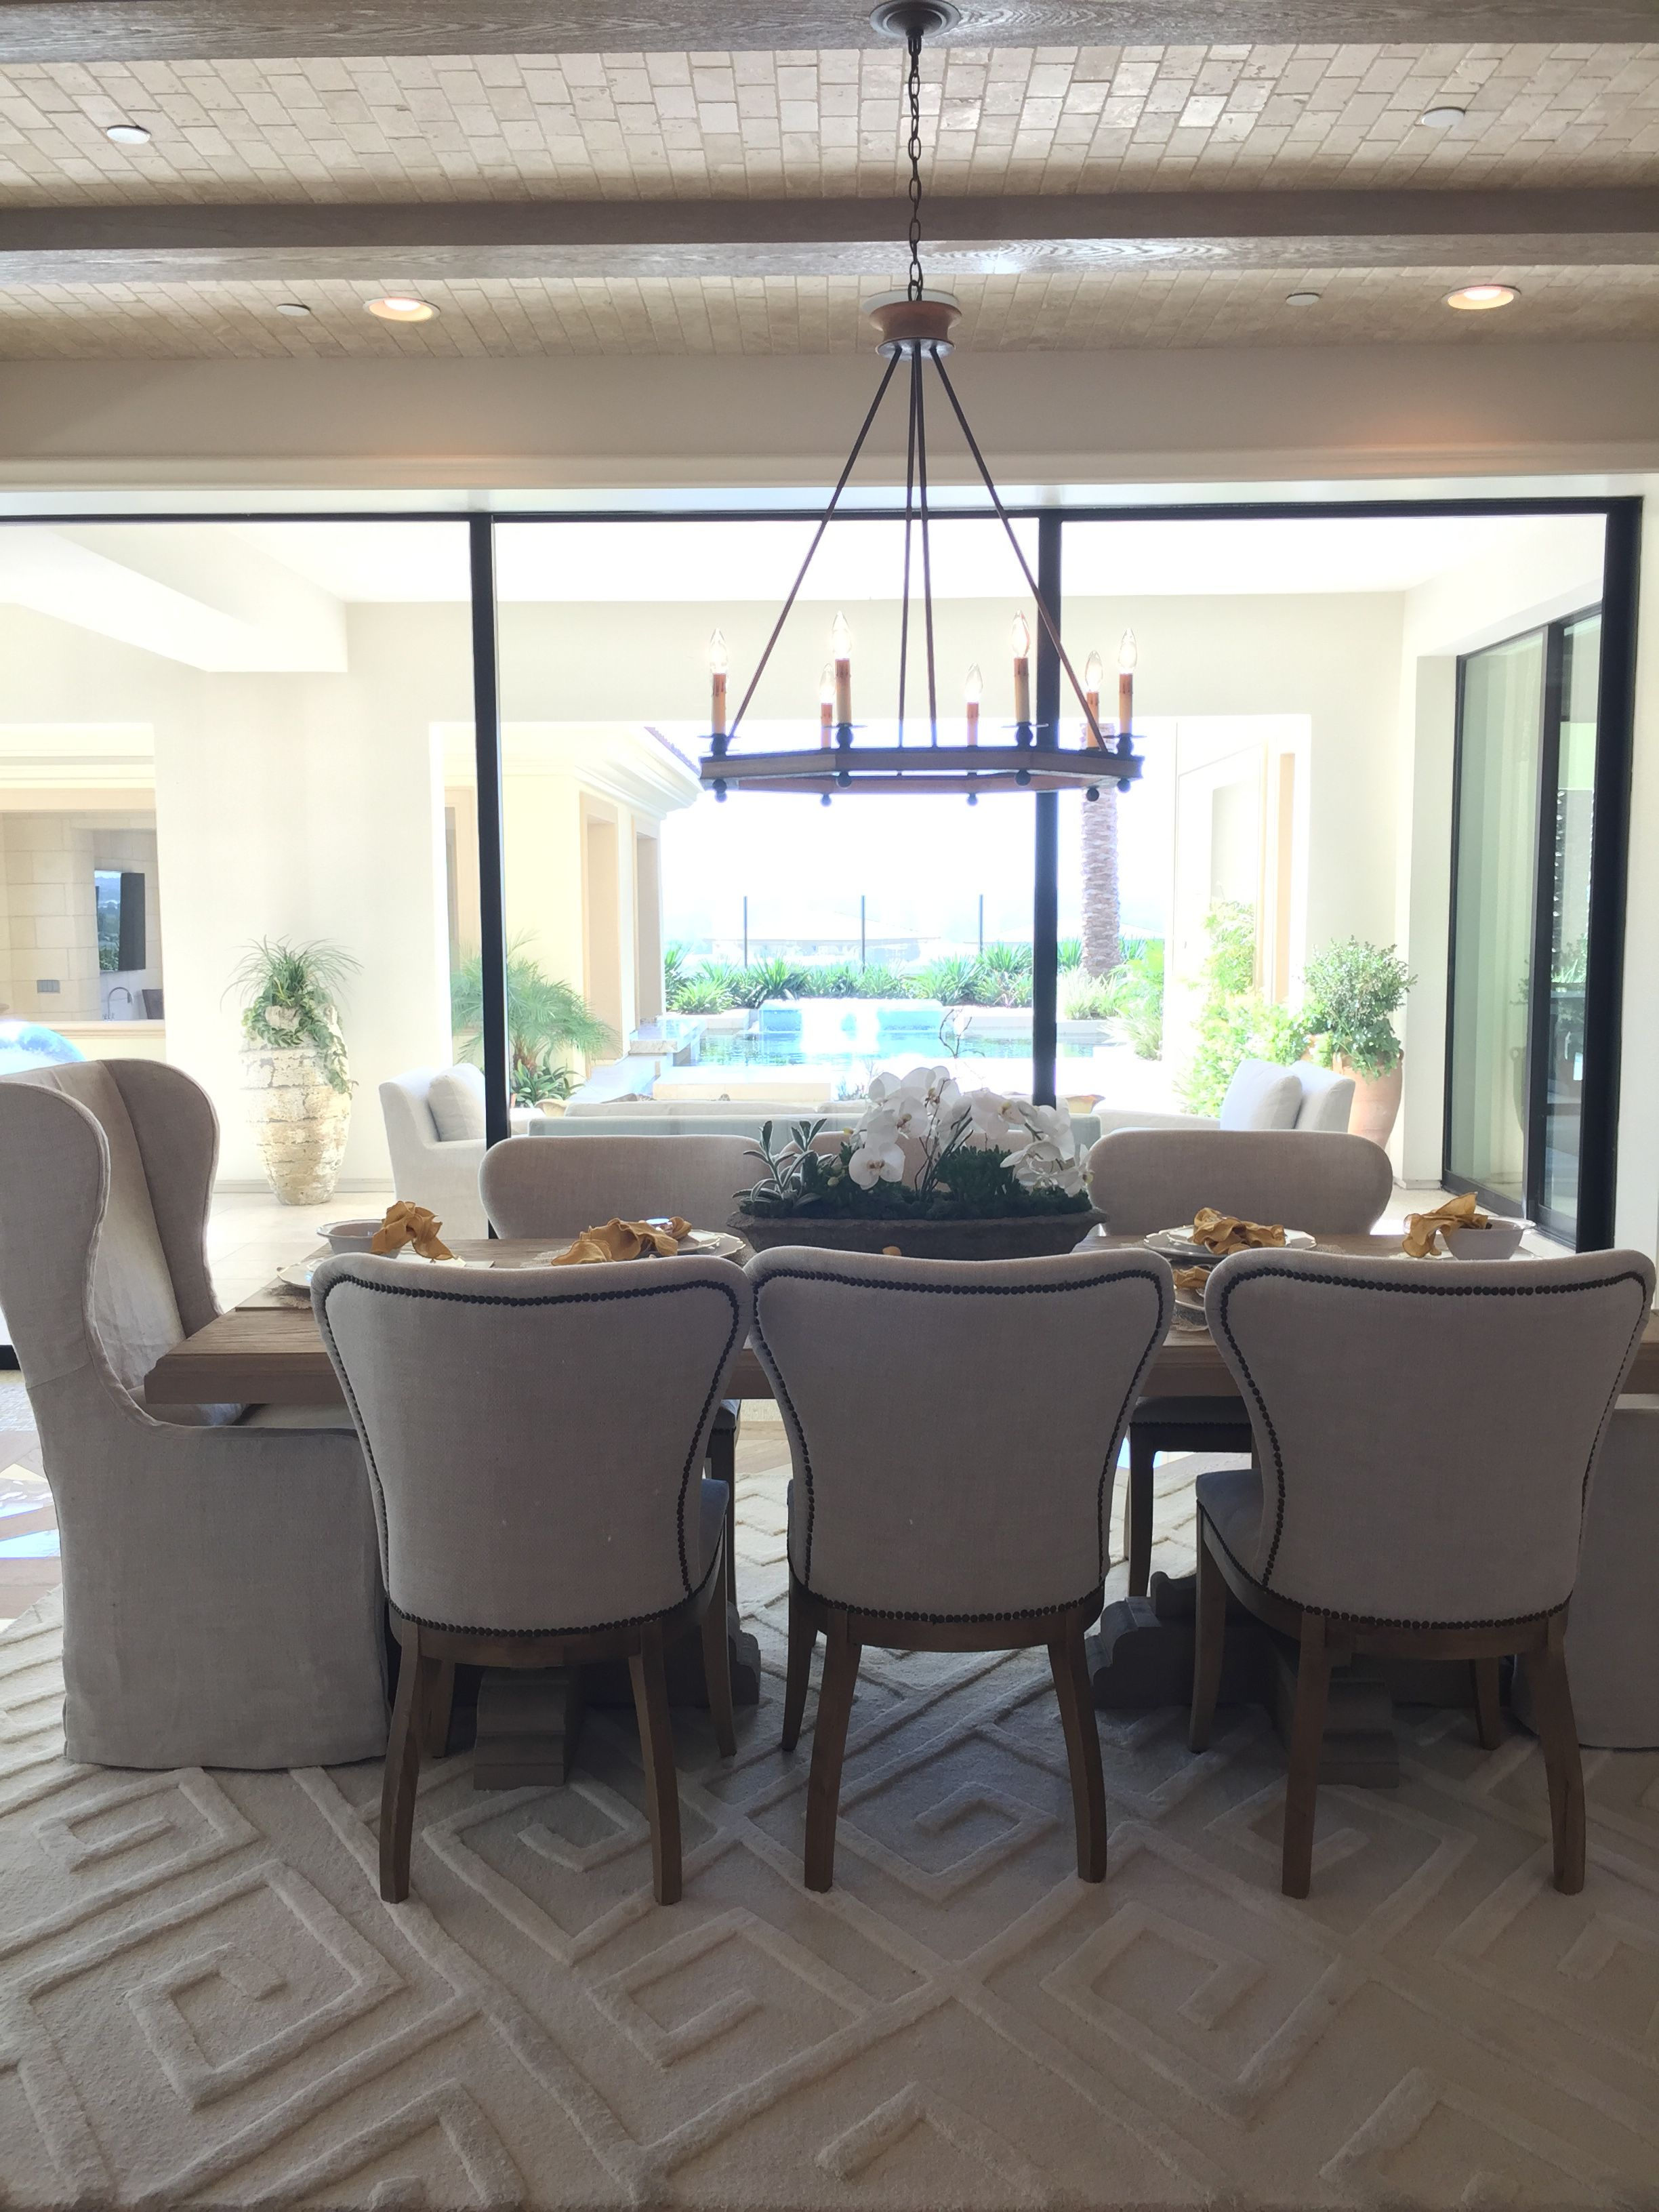 Toll brothers dining room | Home, Dining, Home decor